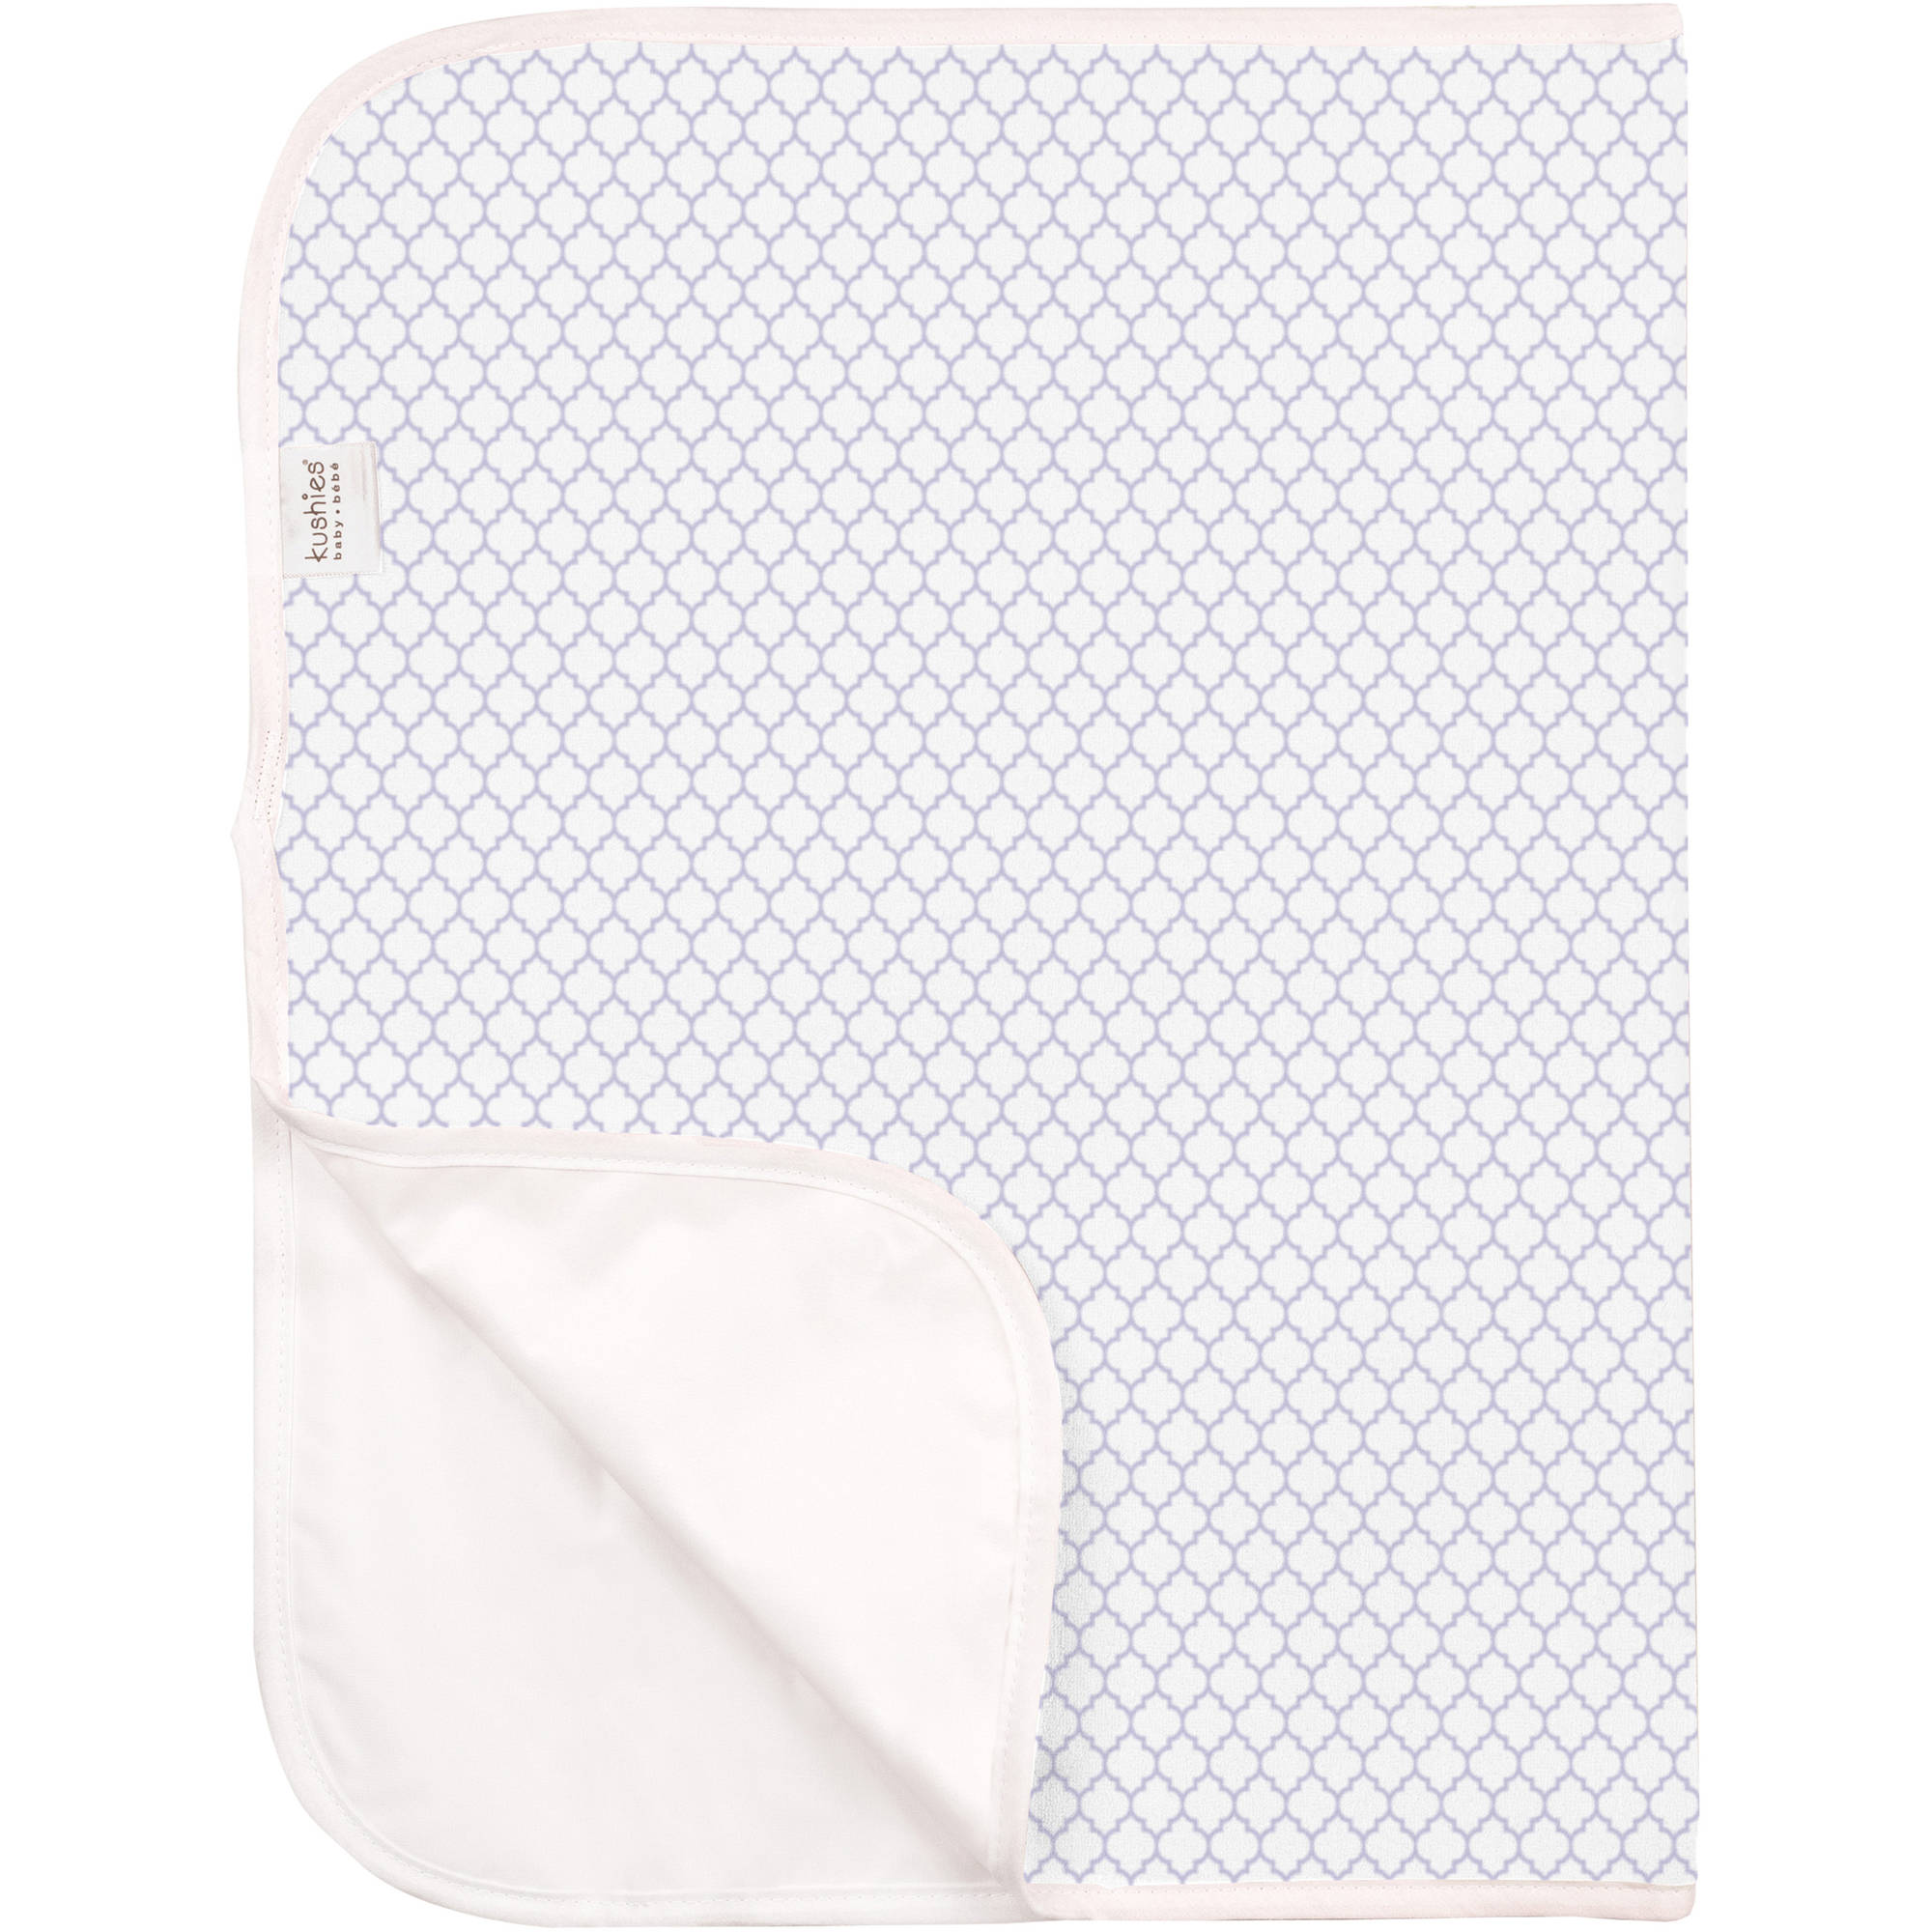 Deluxe Terry Change Pad, White/Lilac Ornament